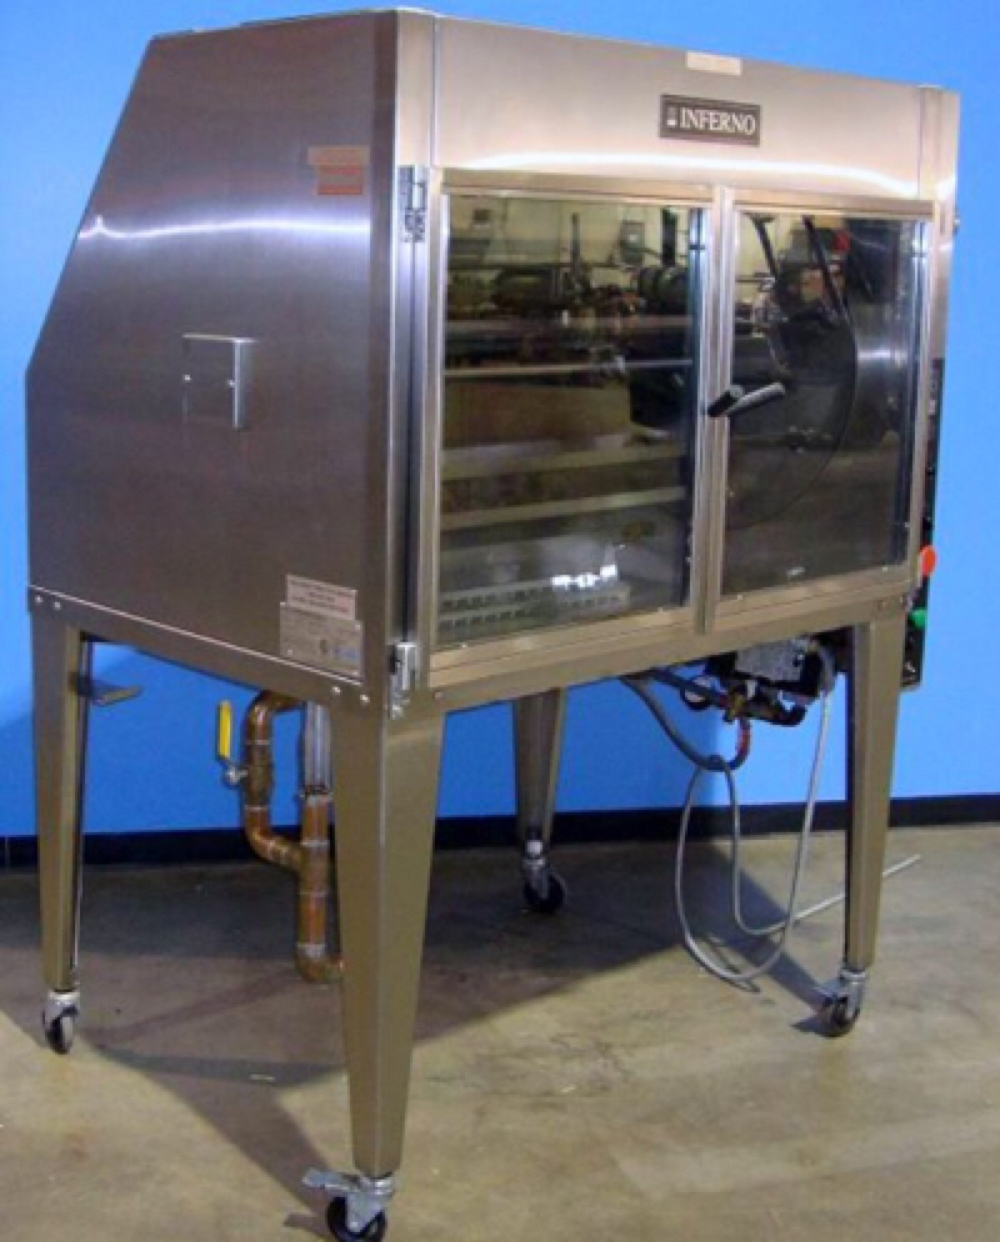 Hardt Inferno 43 Commercial Rotisserie Chicken Oven - $3,000.00